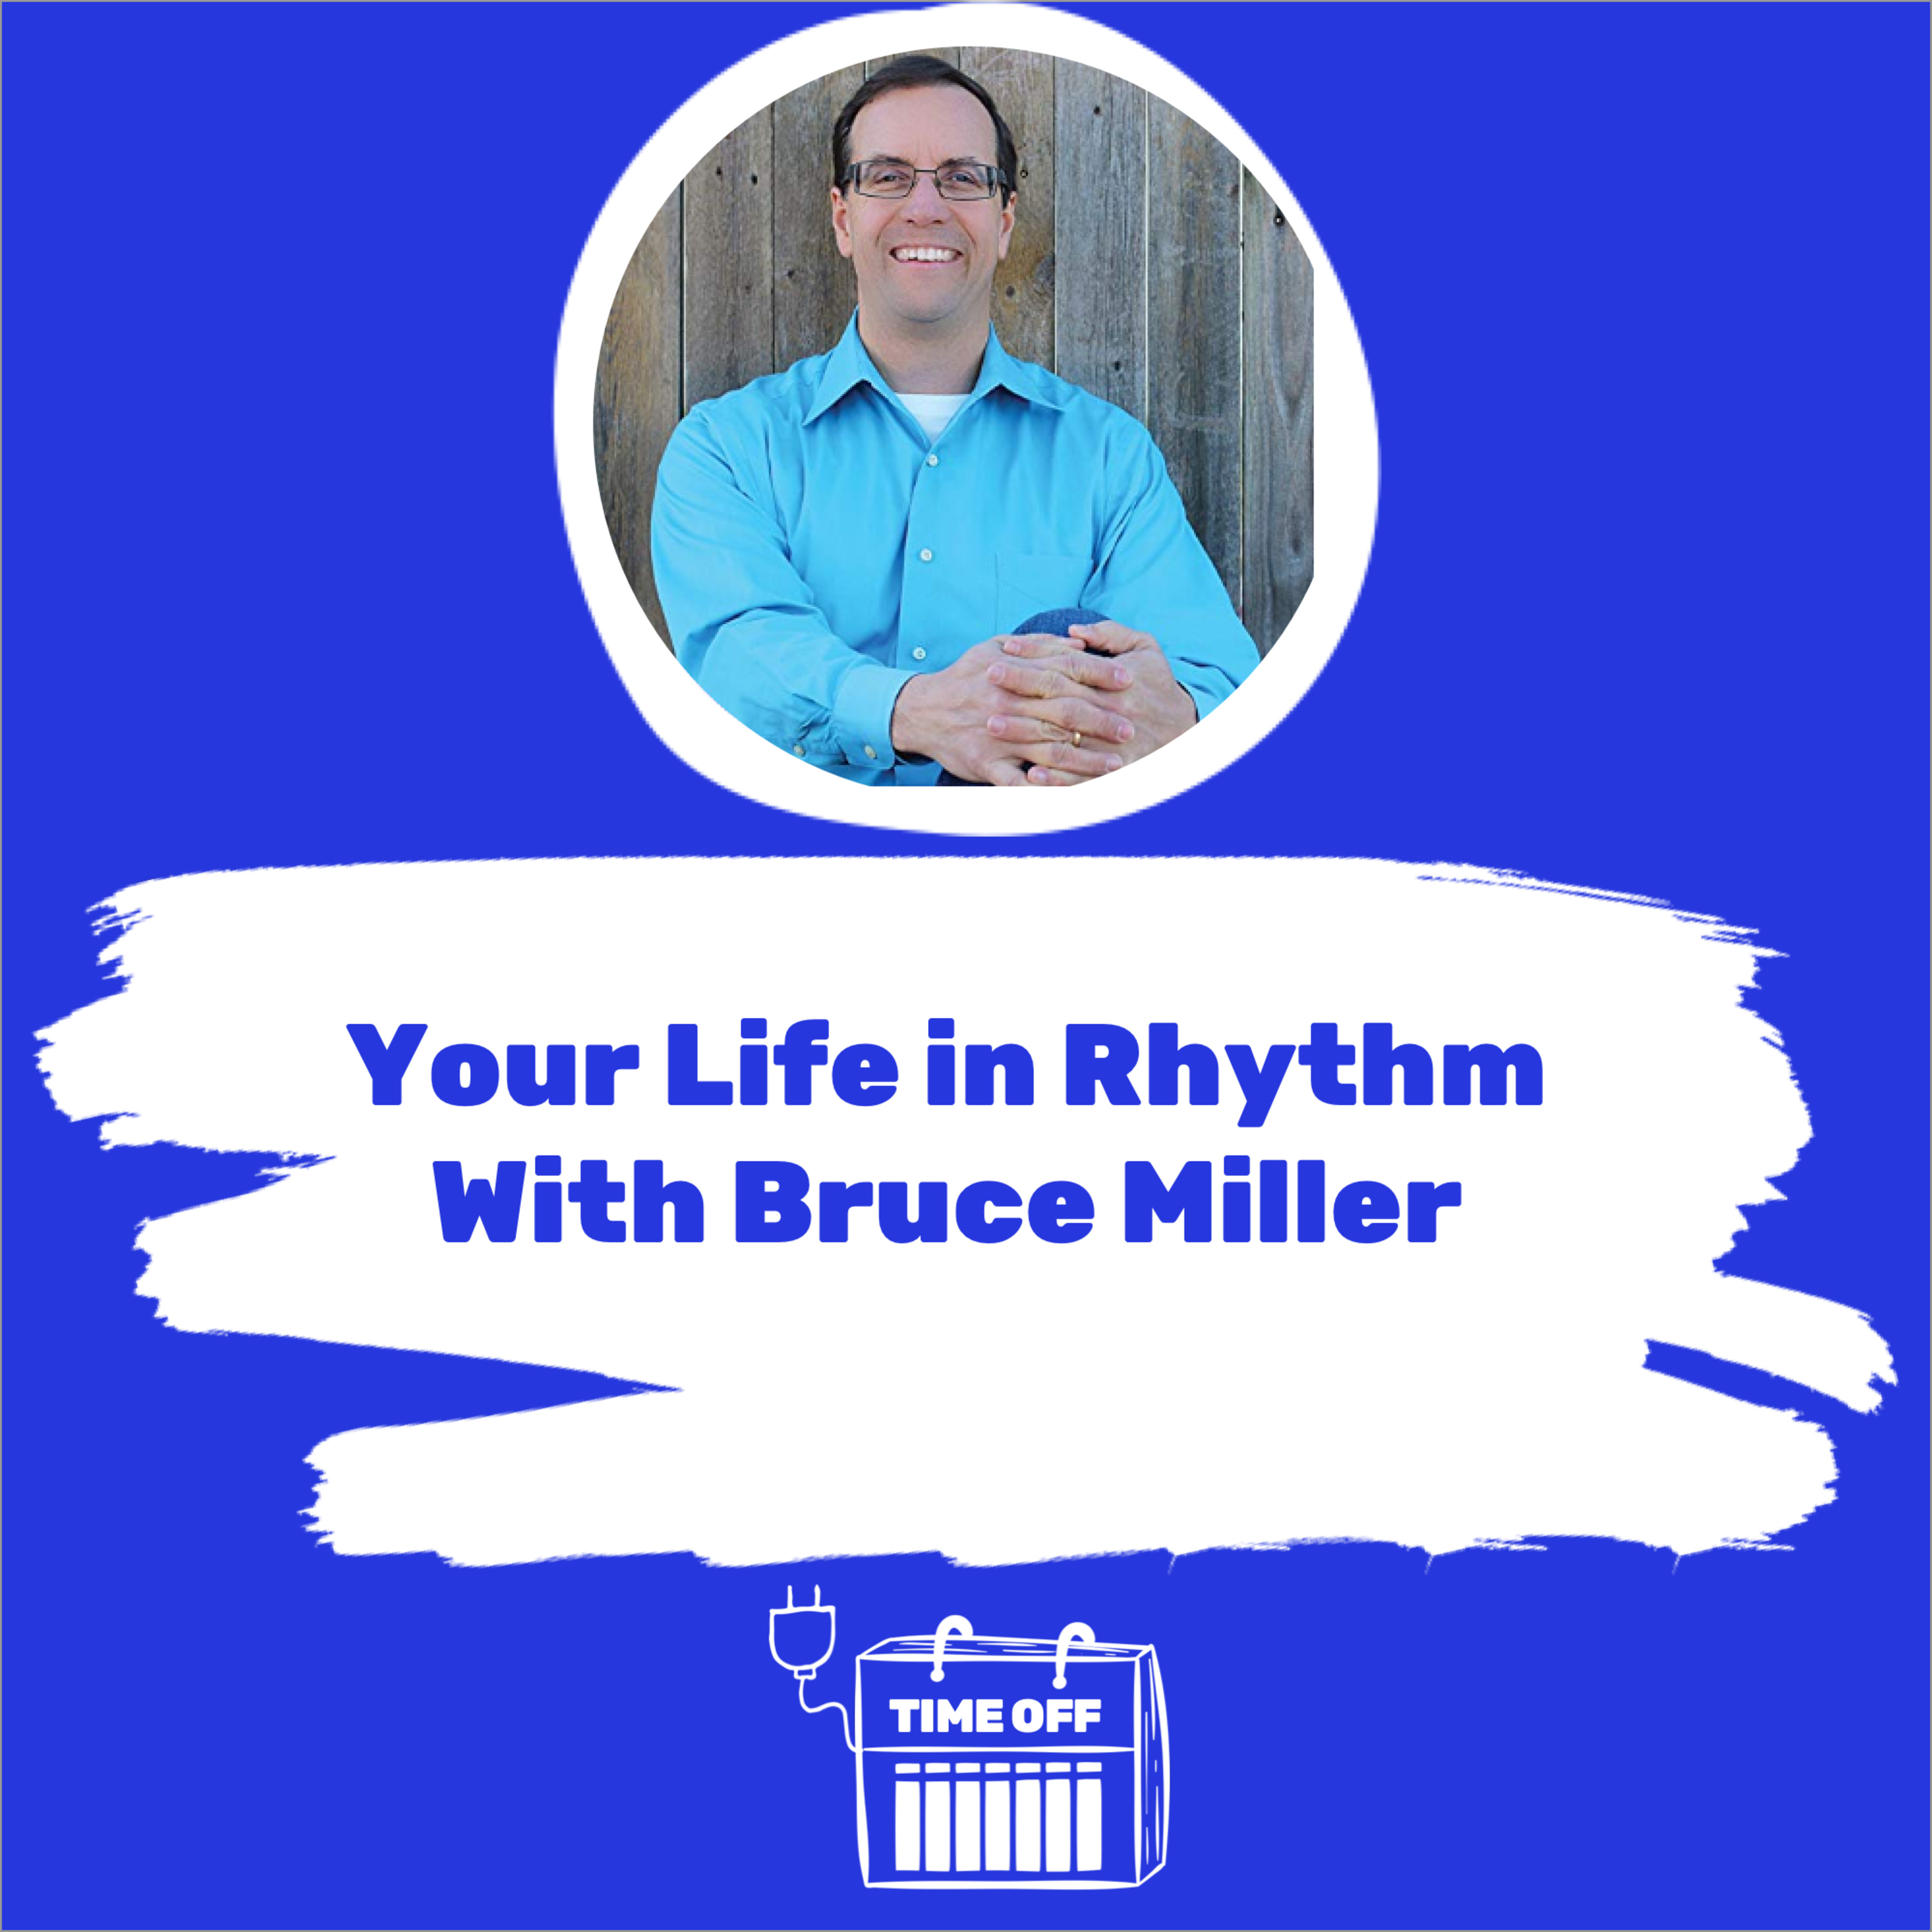 Your Life in Rhythm With Bruce Miller